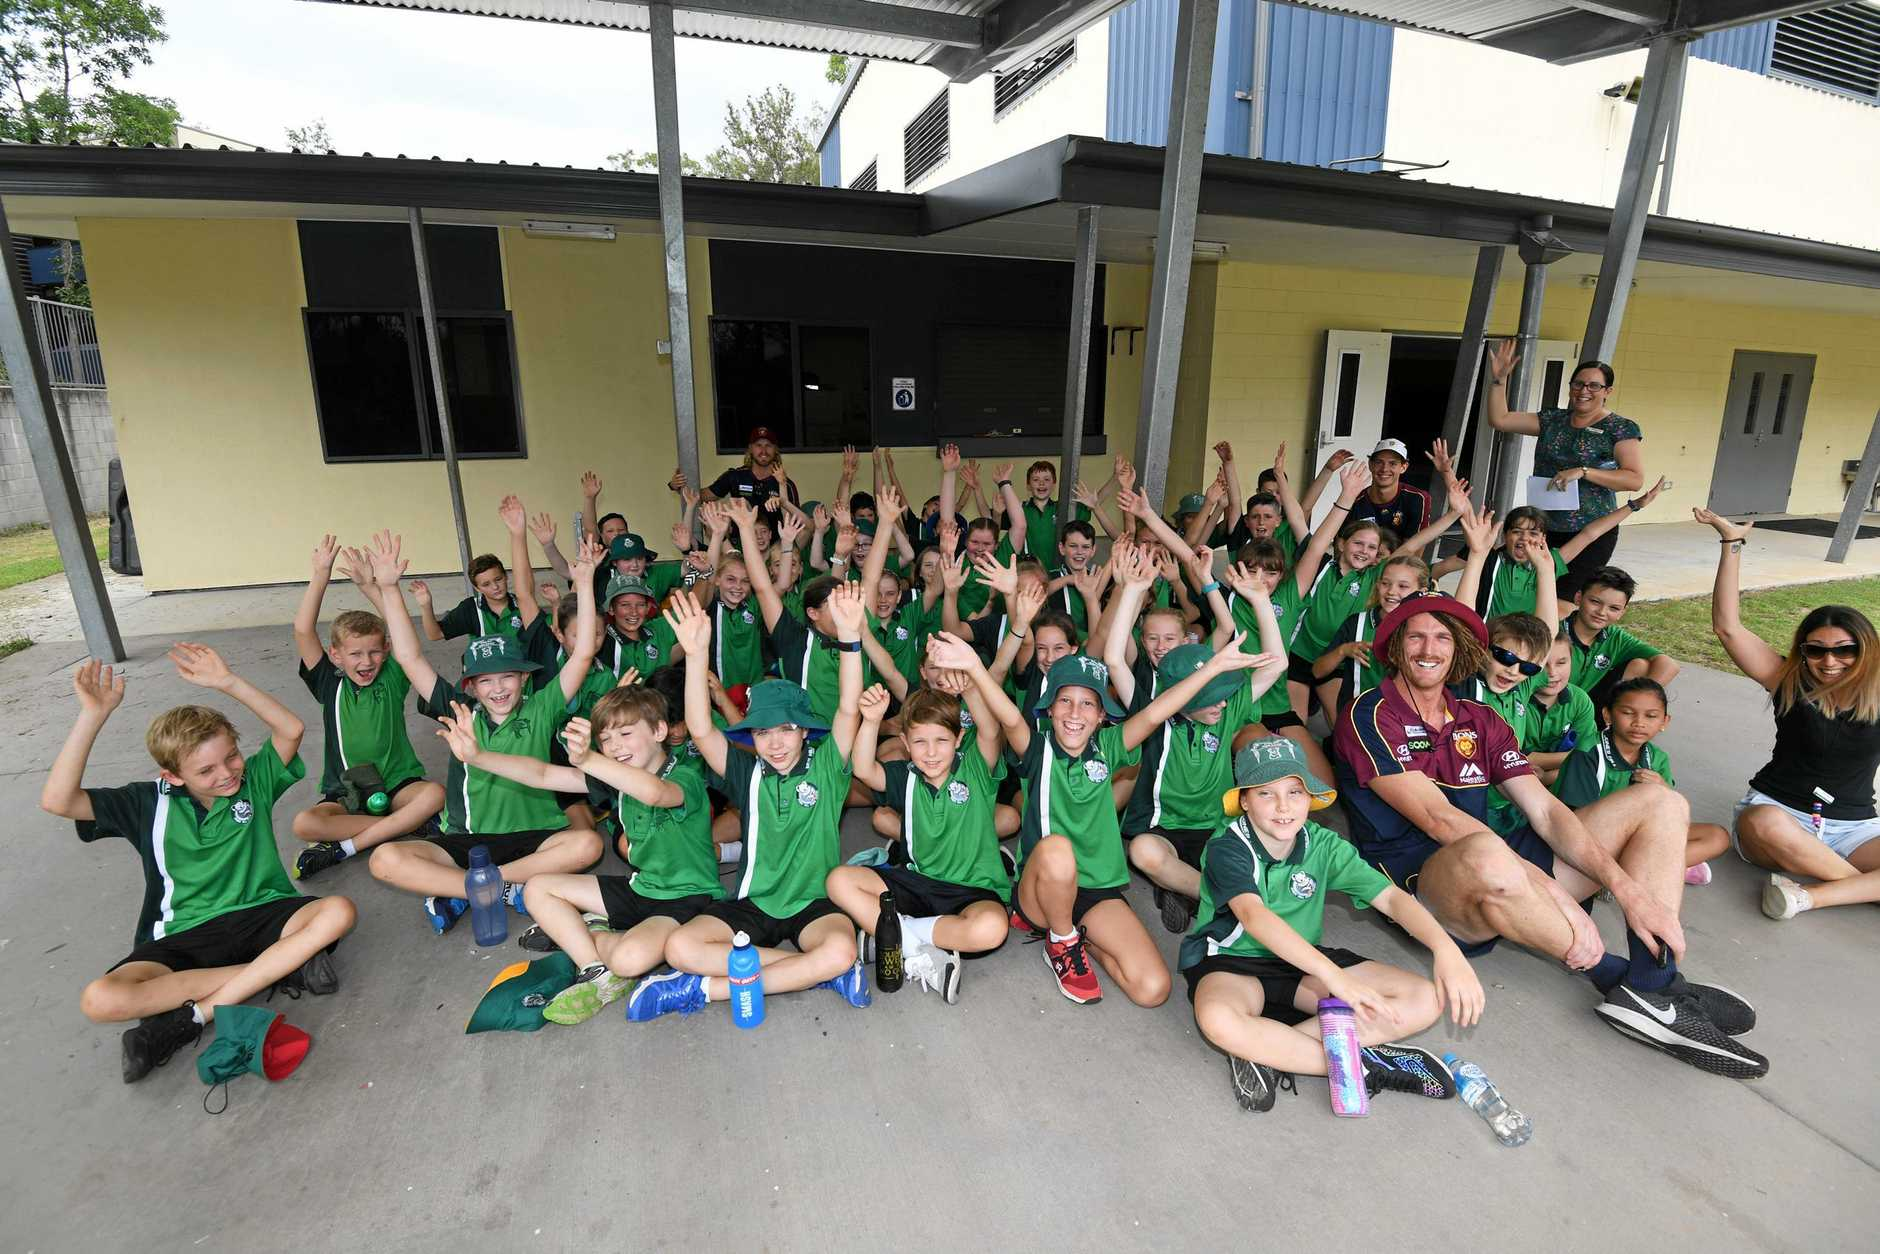 Jones hill class visited by Brisbane Lyons players